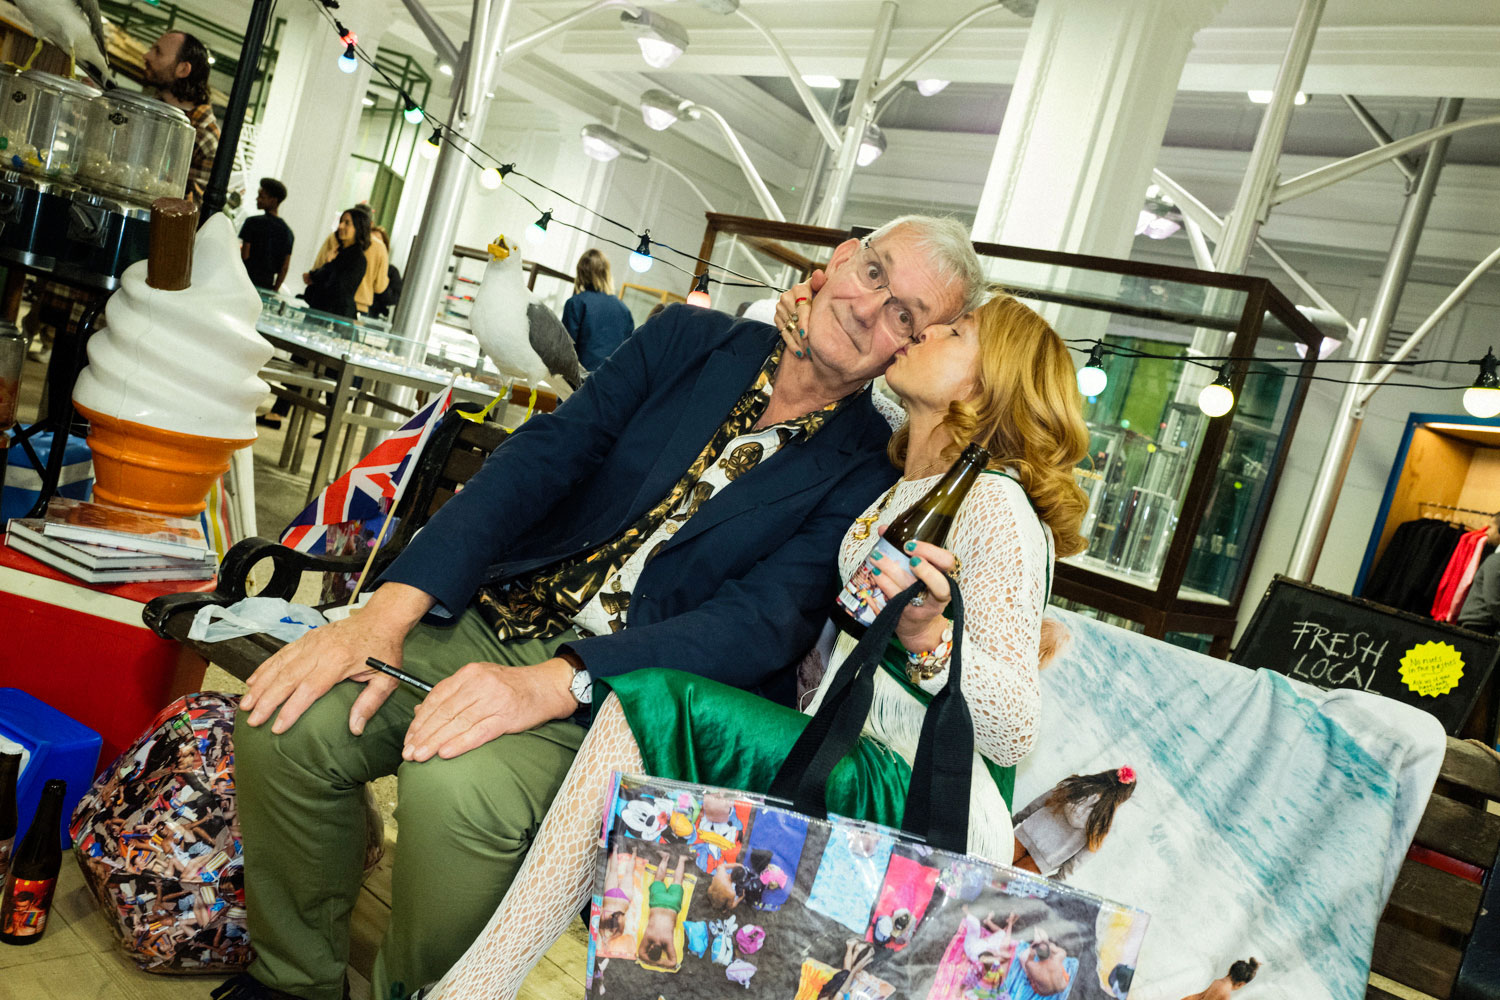 Martin Parr with a guest at Dover Street Market in London